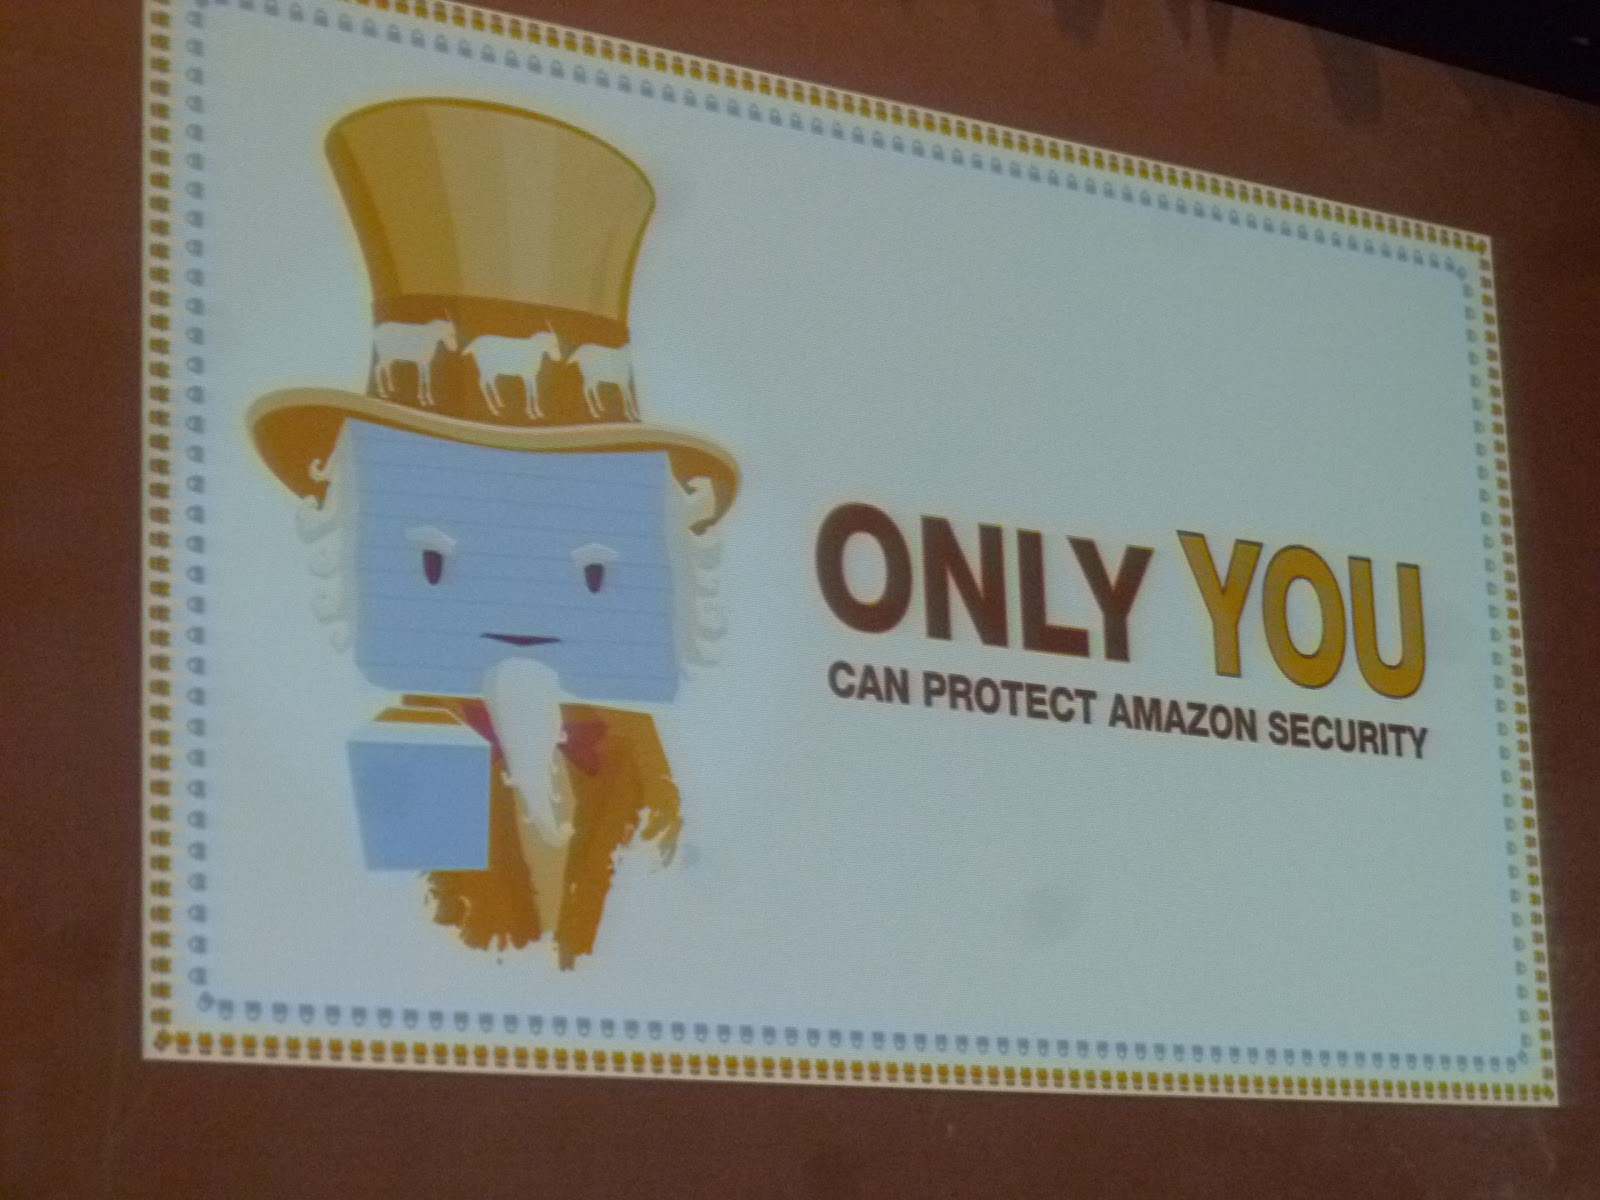 aws-amazon-web-services-reinvent-blog-domenech-org-only-you-can-protect-amazon-security